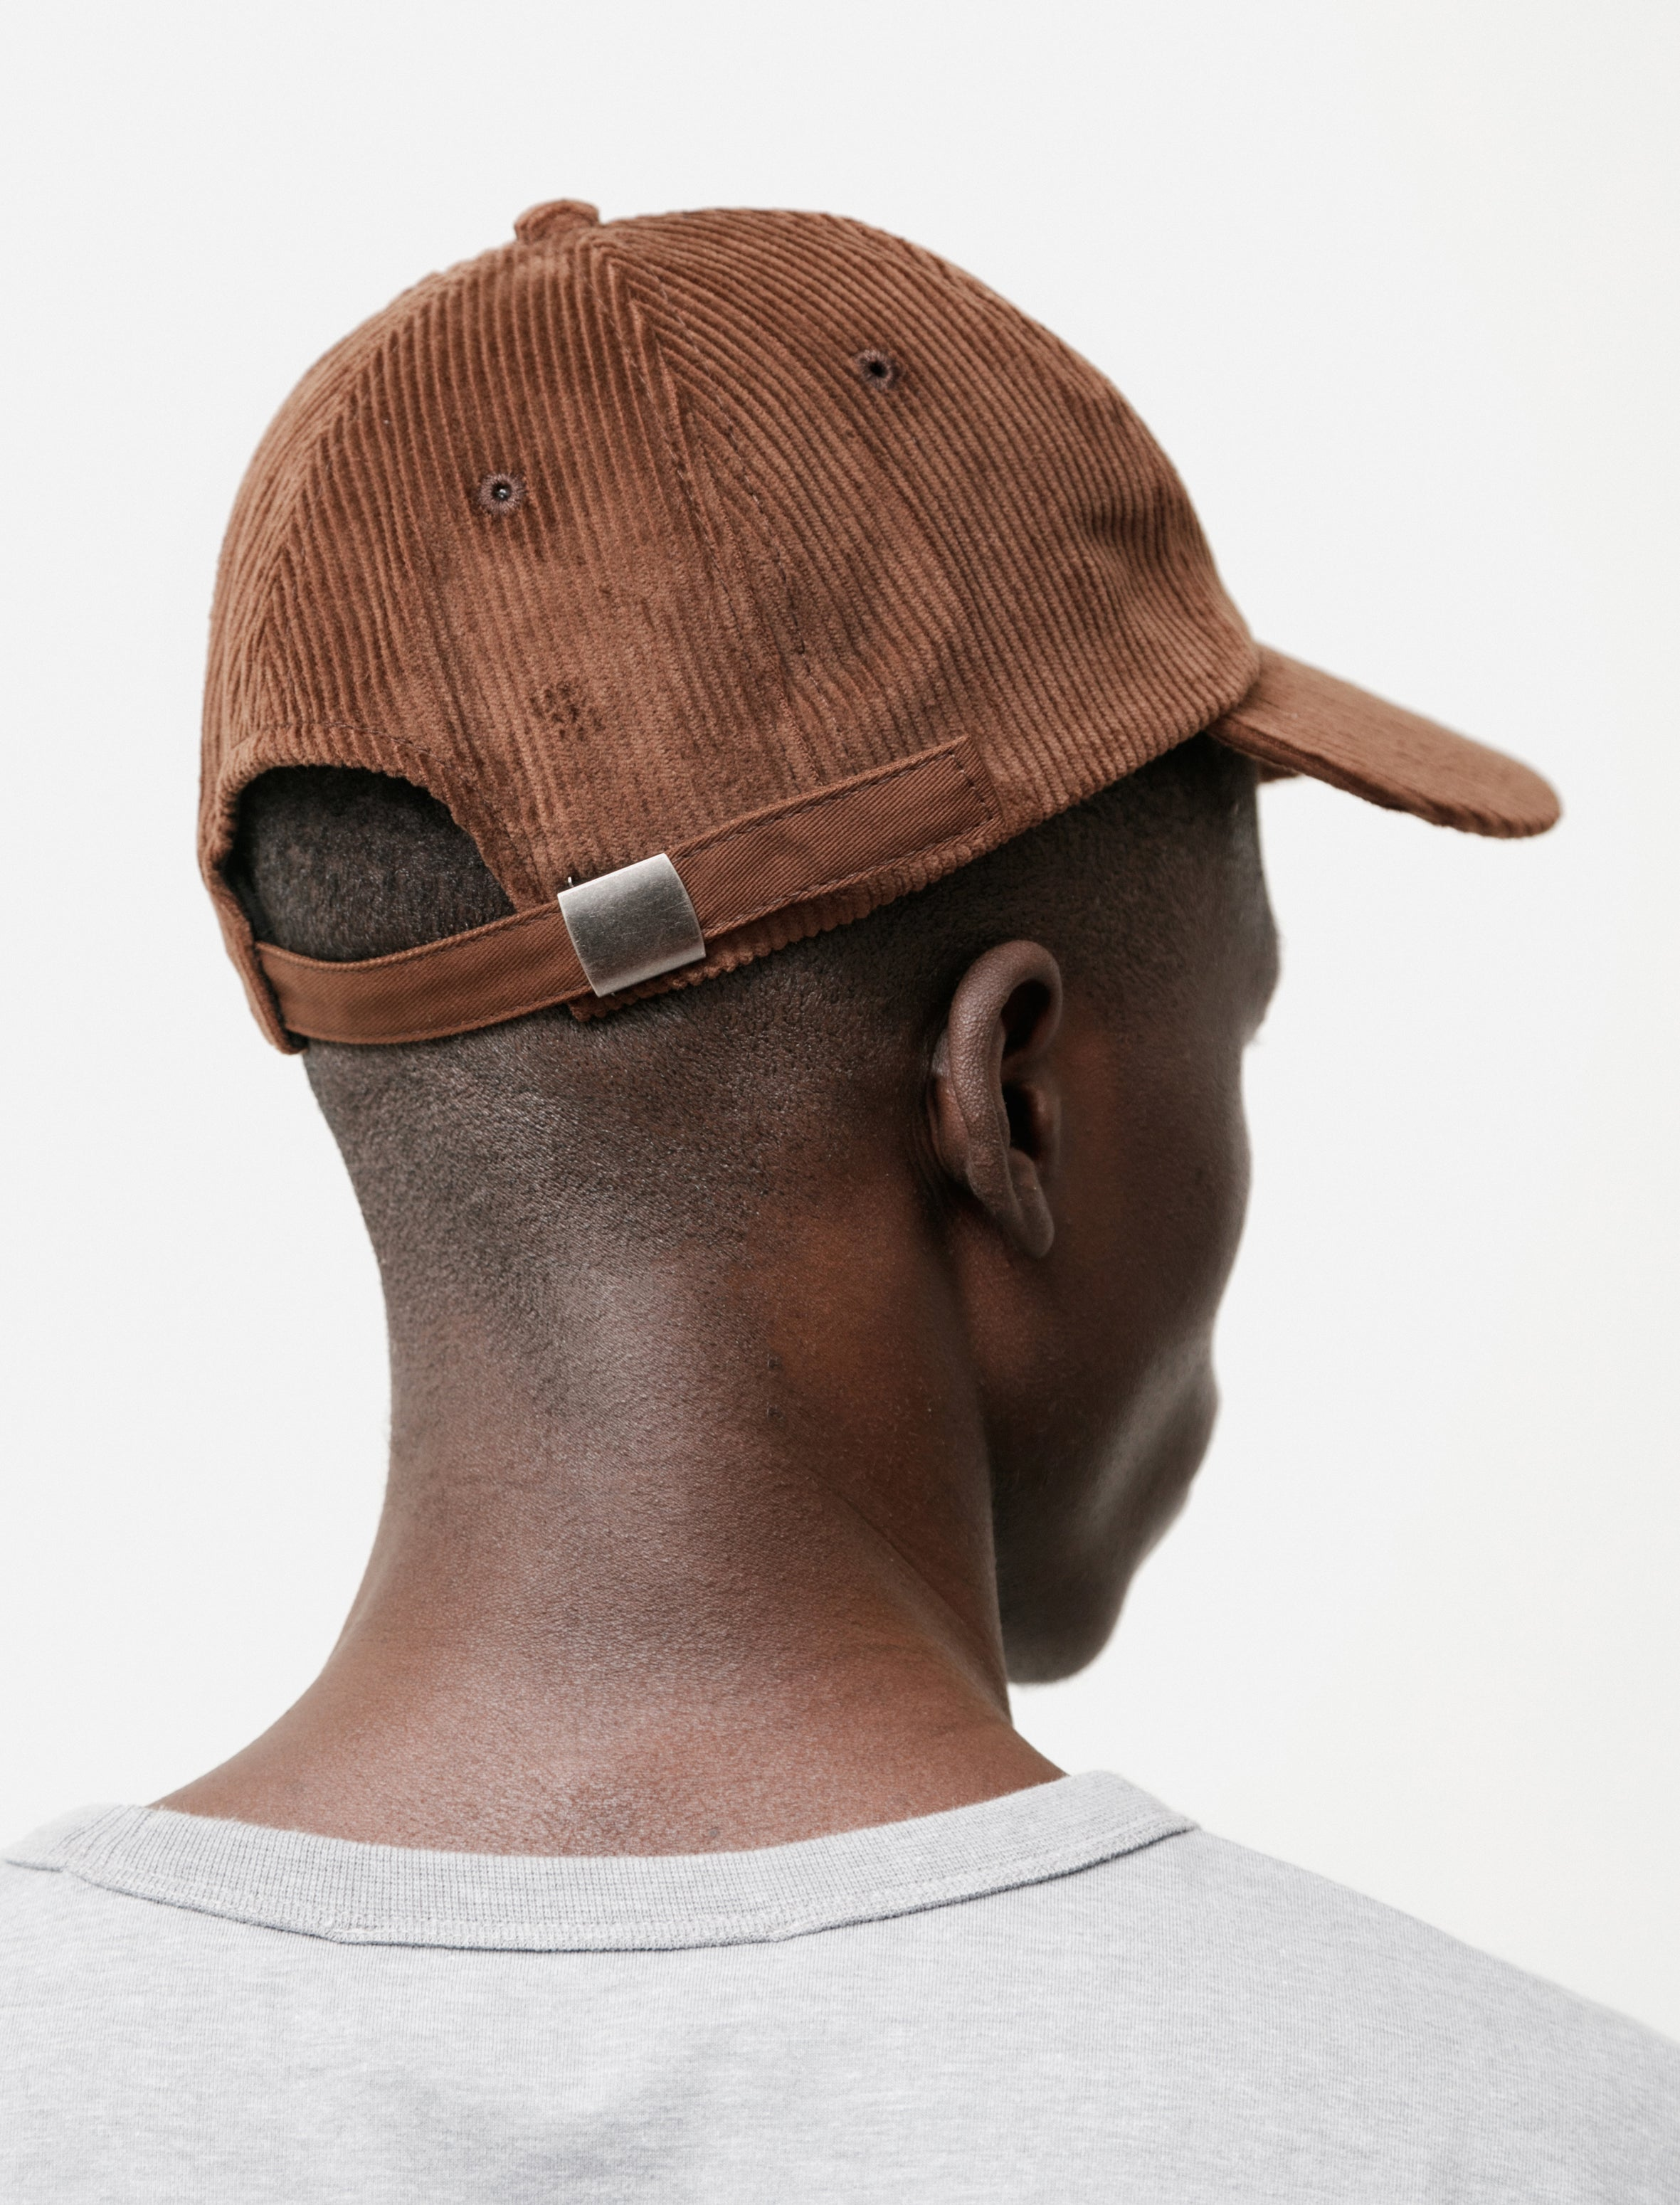 The Planet Sun Dog Hat Brown Cord